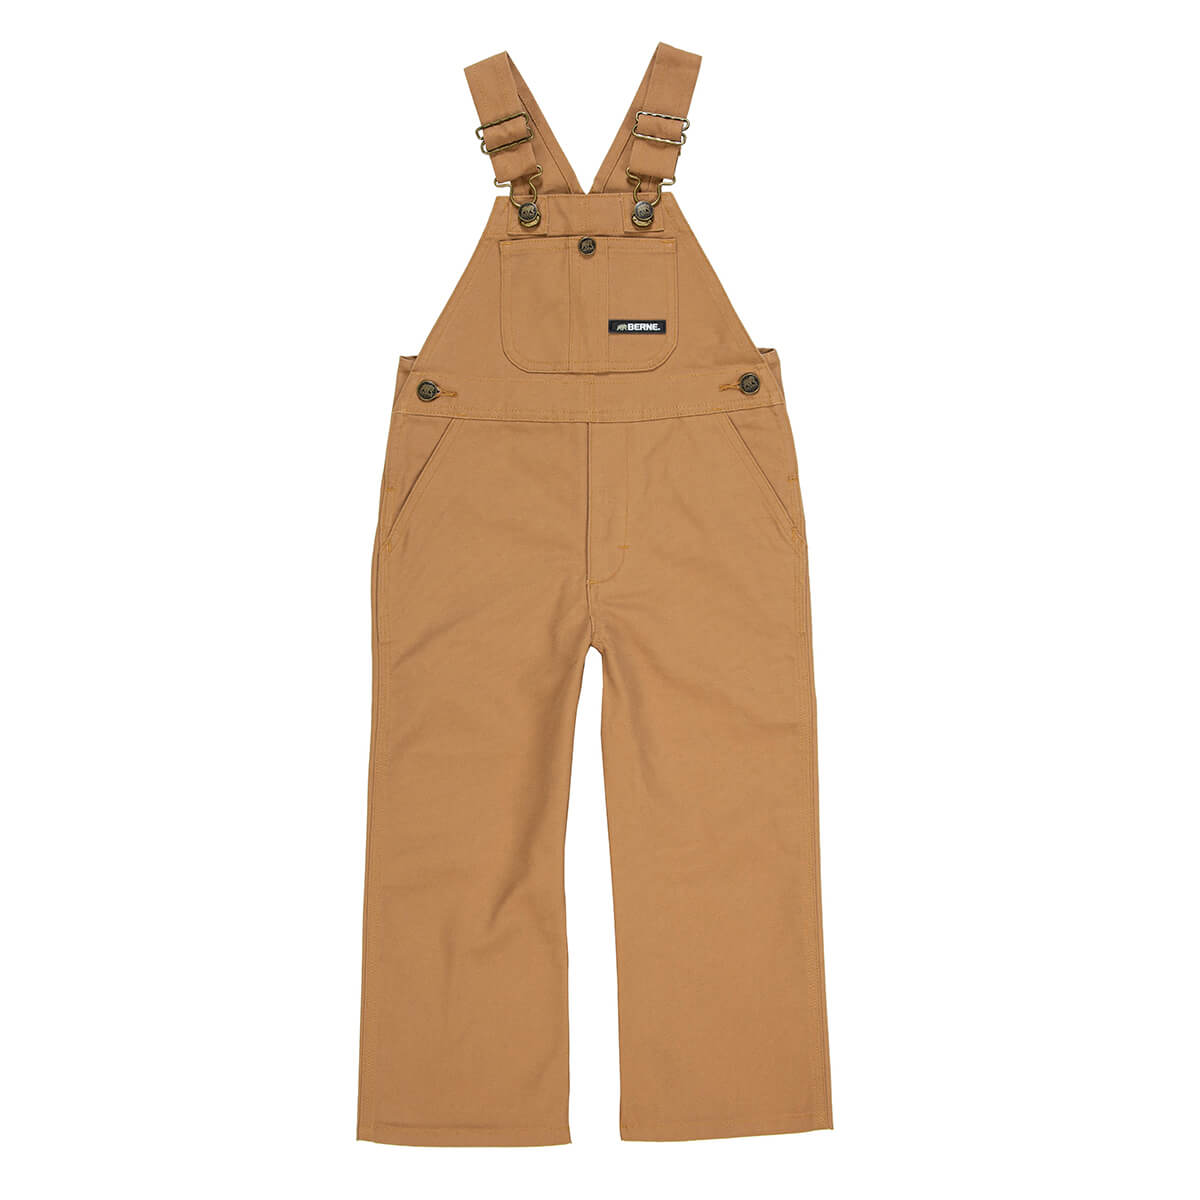 Youth Unlined Overall - Duck Brown